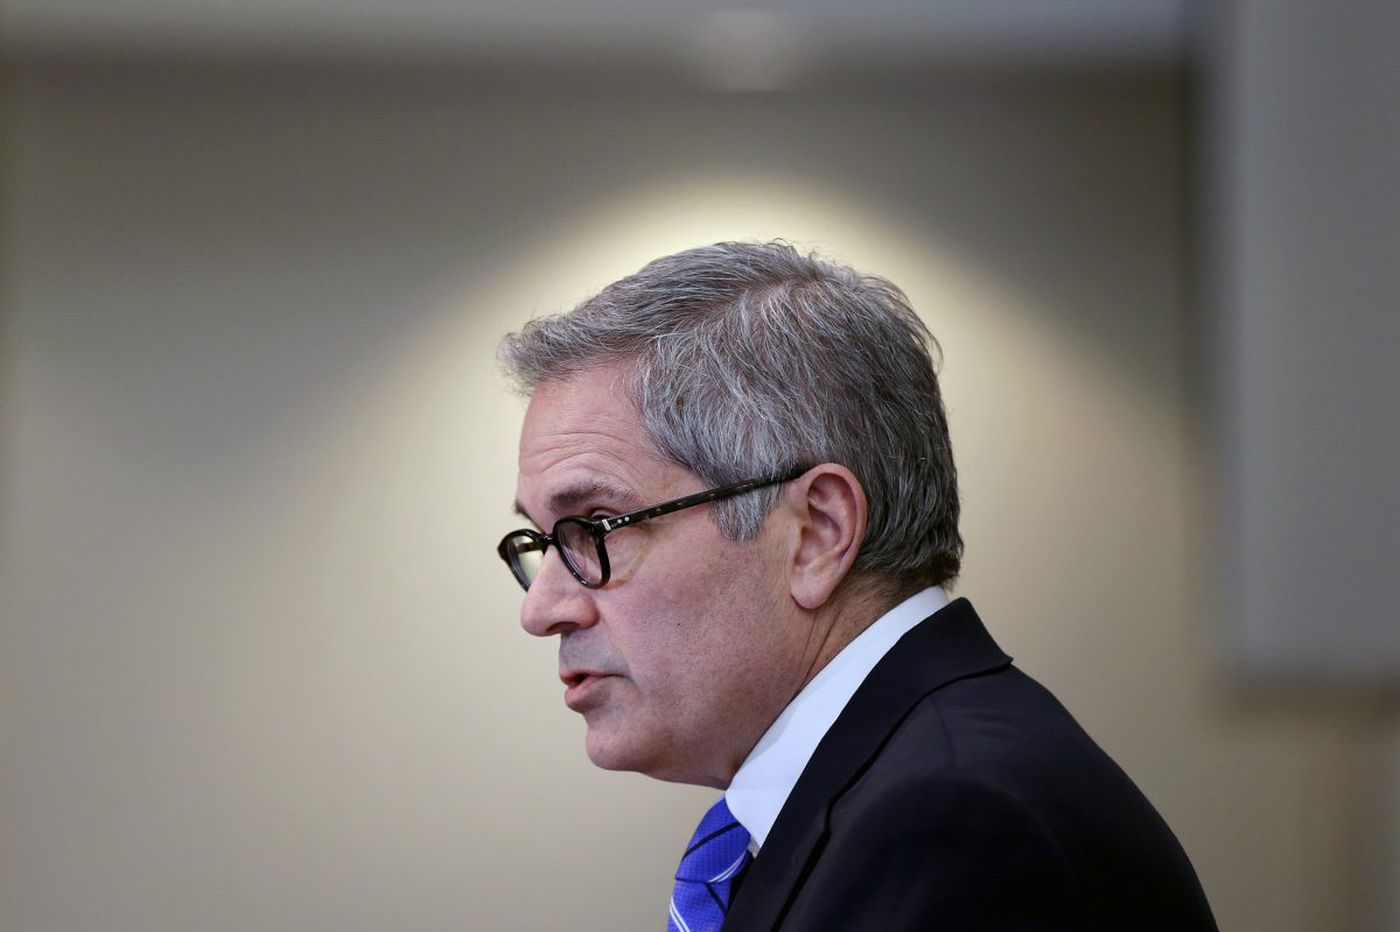 Kudos to Krasner for cost-conscious prosecution, but criminal justice is about more than money | Opinion